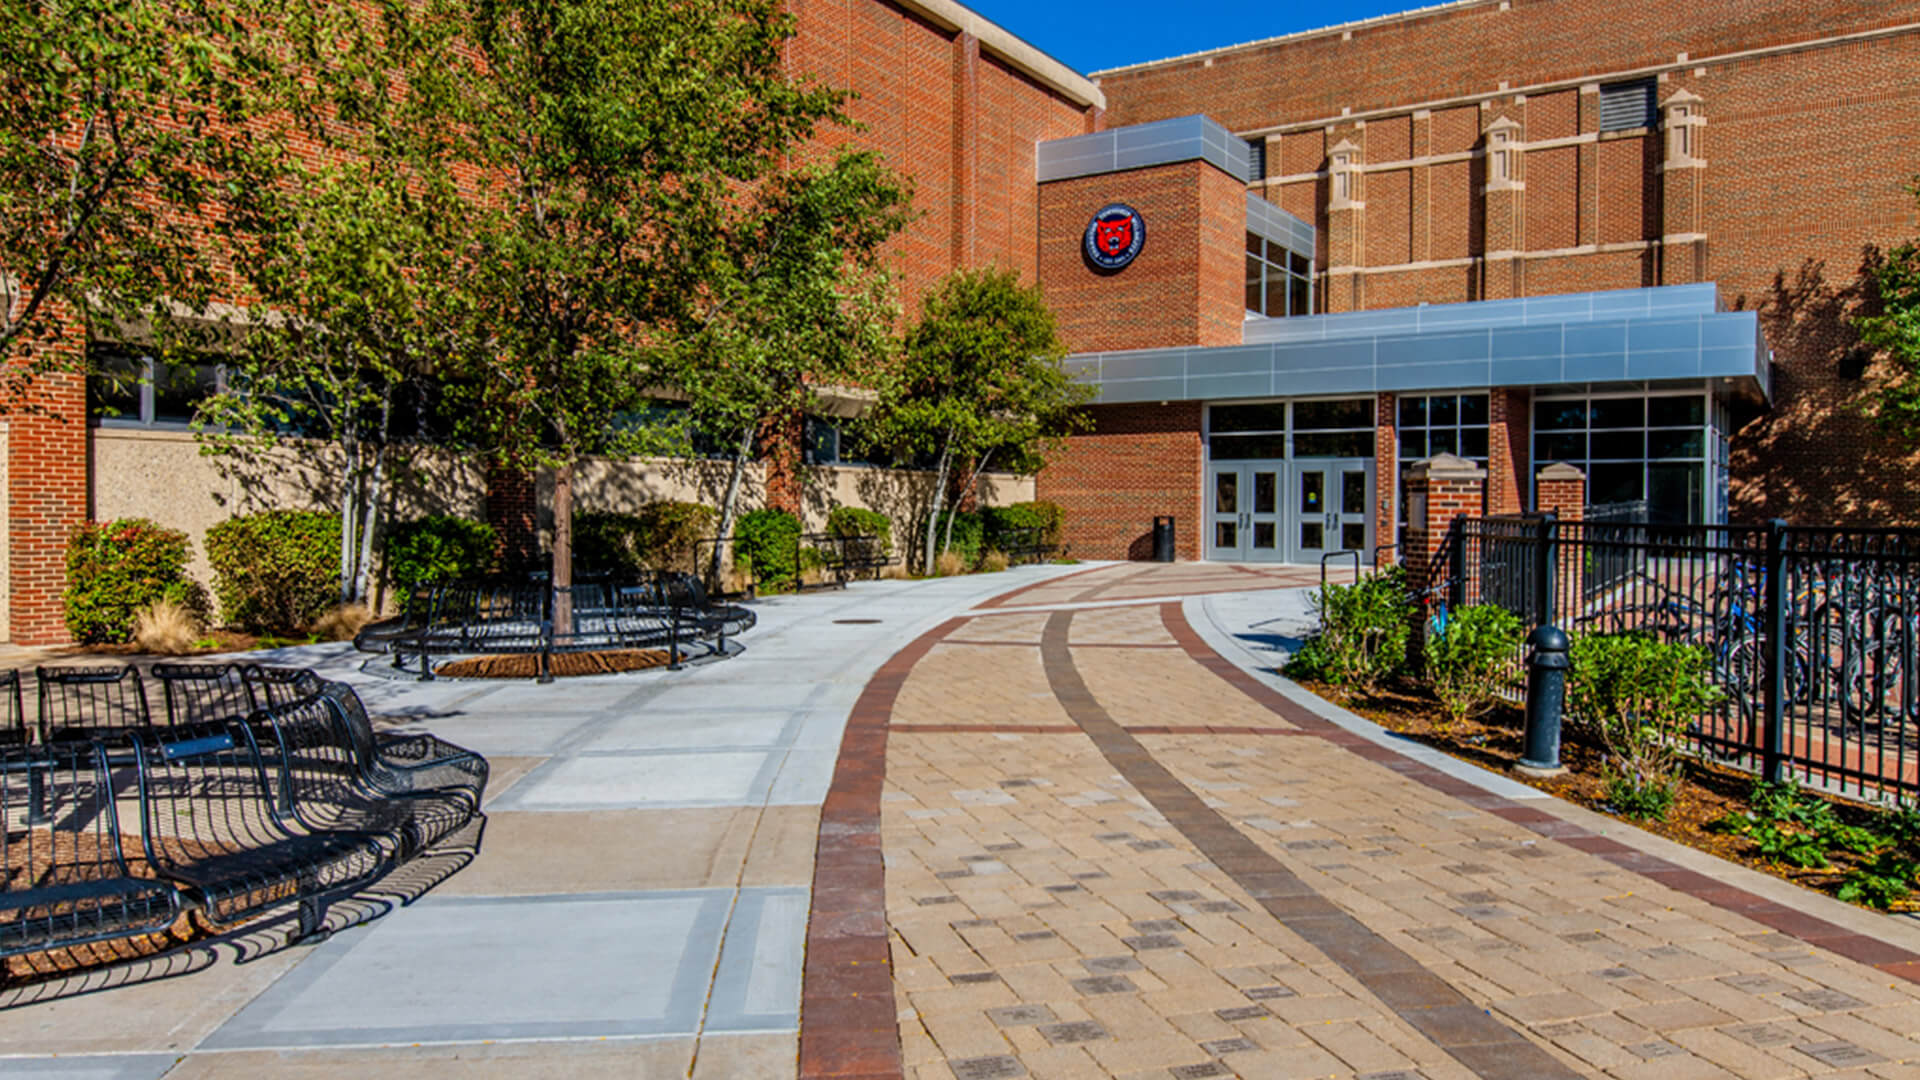 Evanston Township High School - Entry & Renovation Project